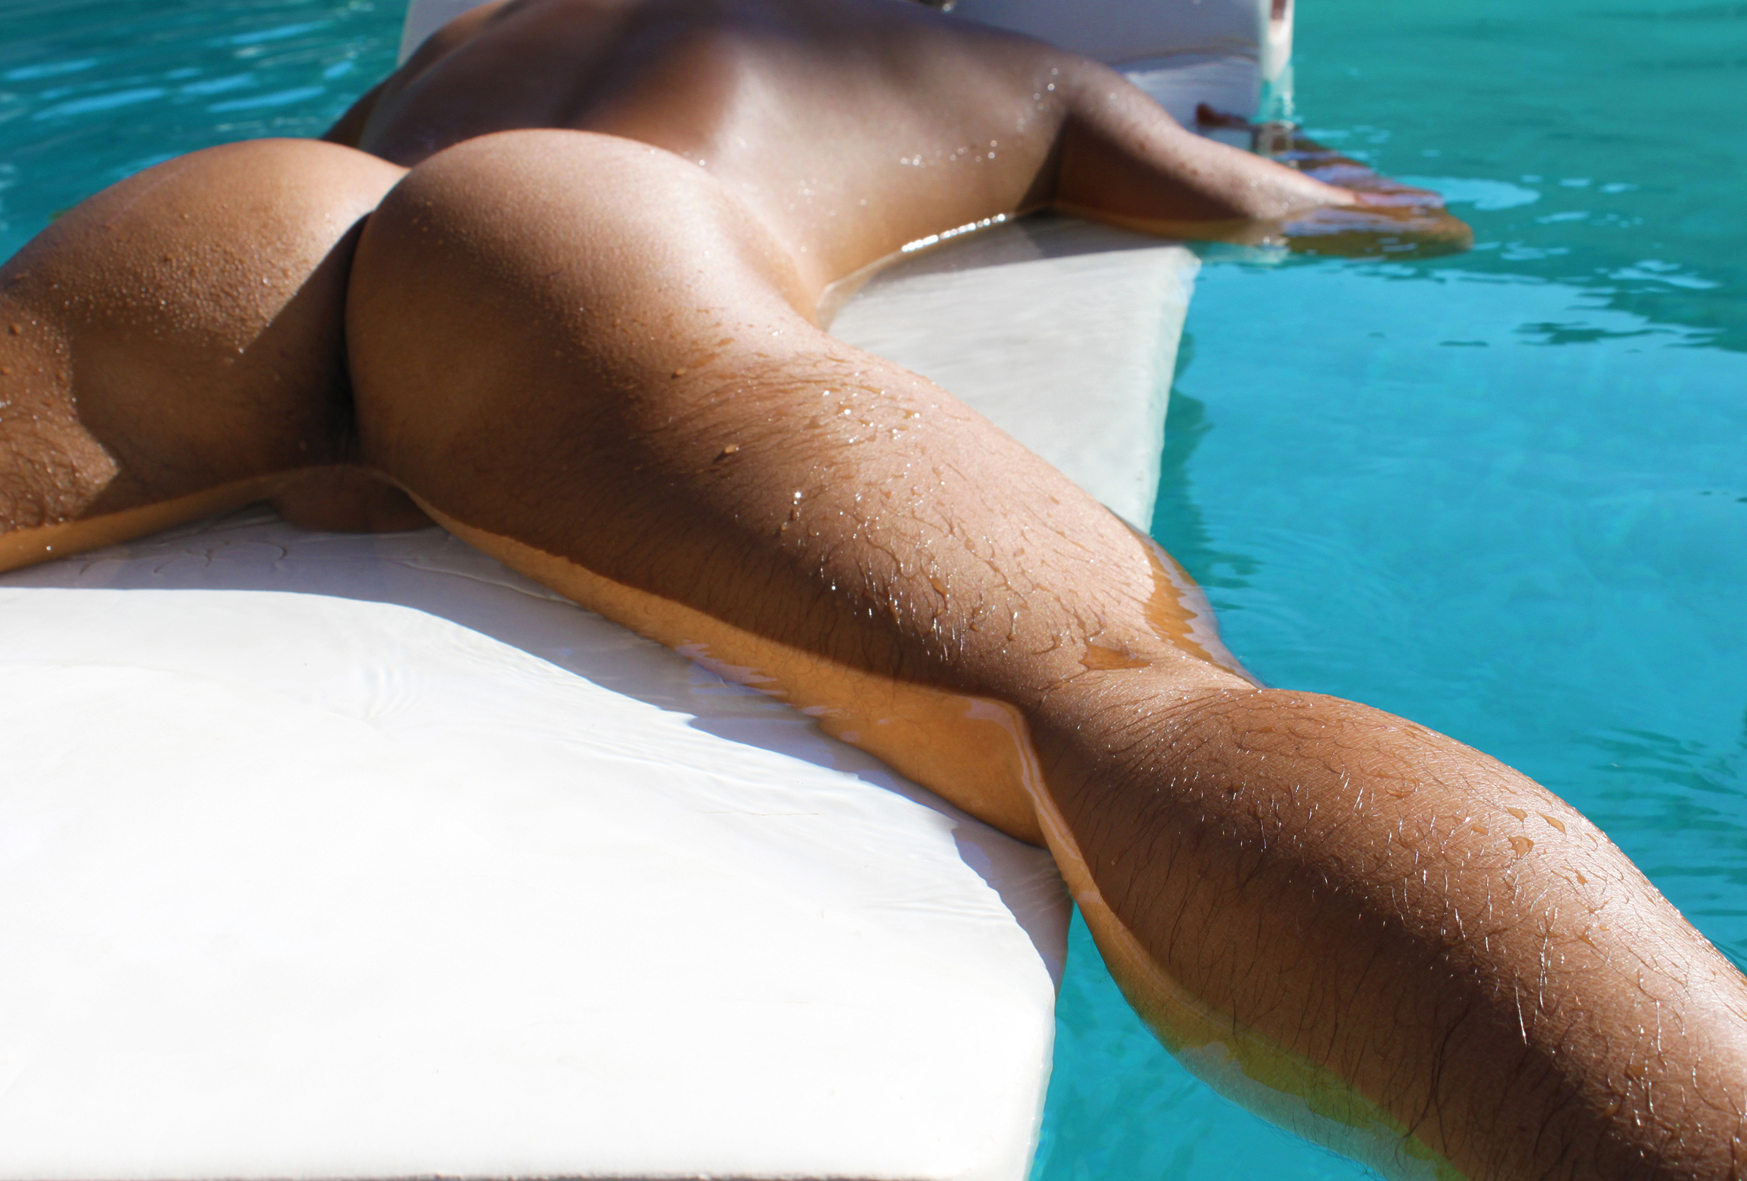 Swimsuit Hi Resolution Nude Beach Pictures Pictures